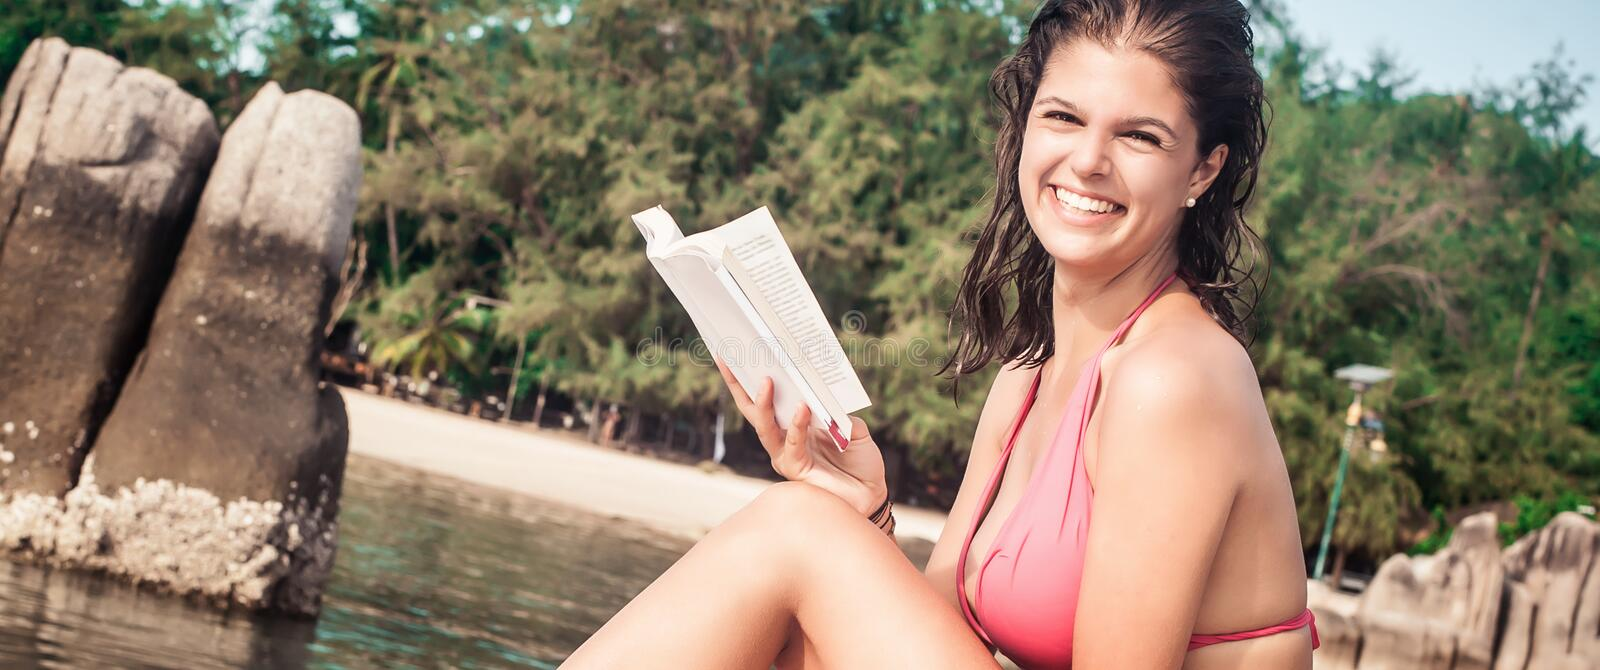 Young woman read book during beach vacation stock image